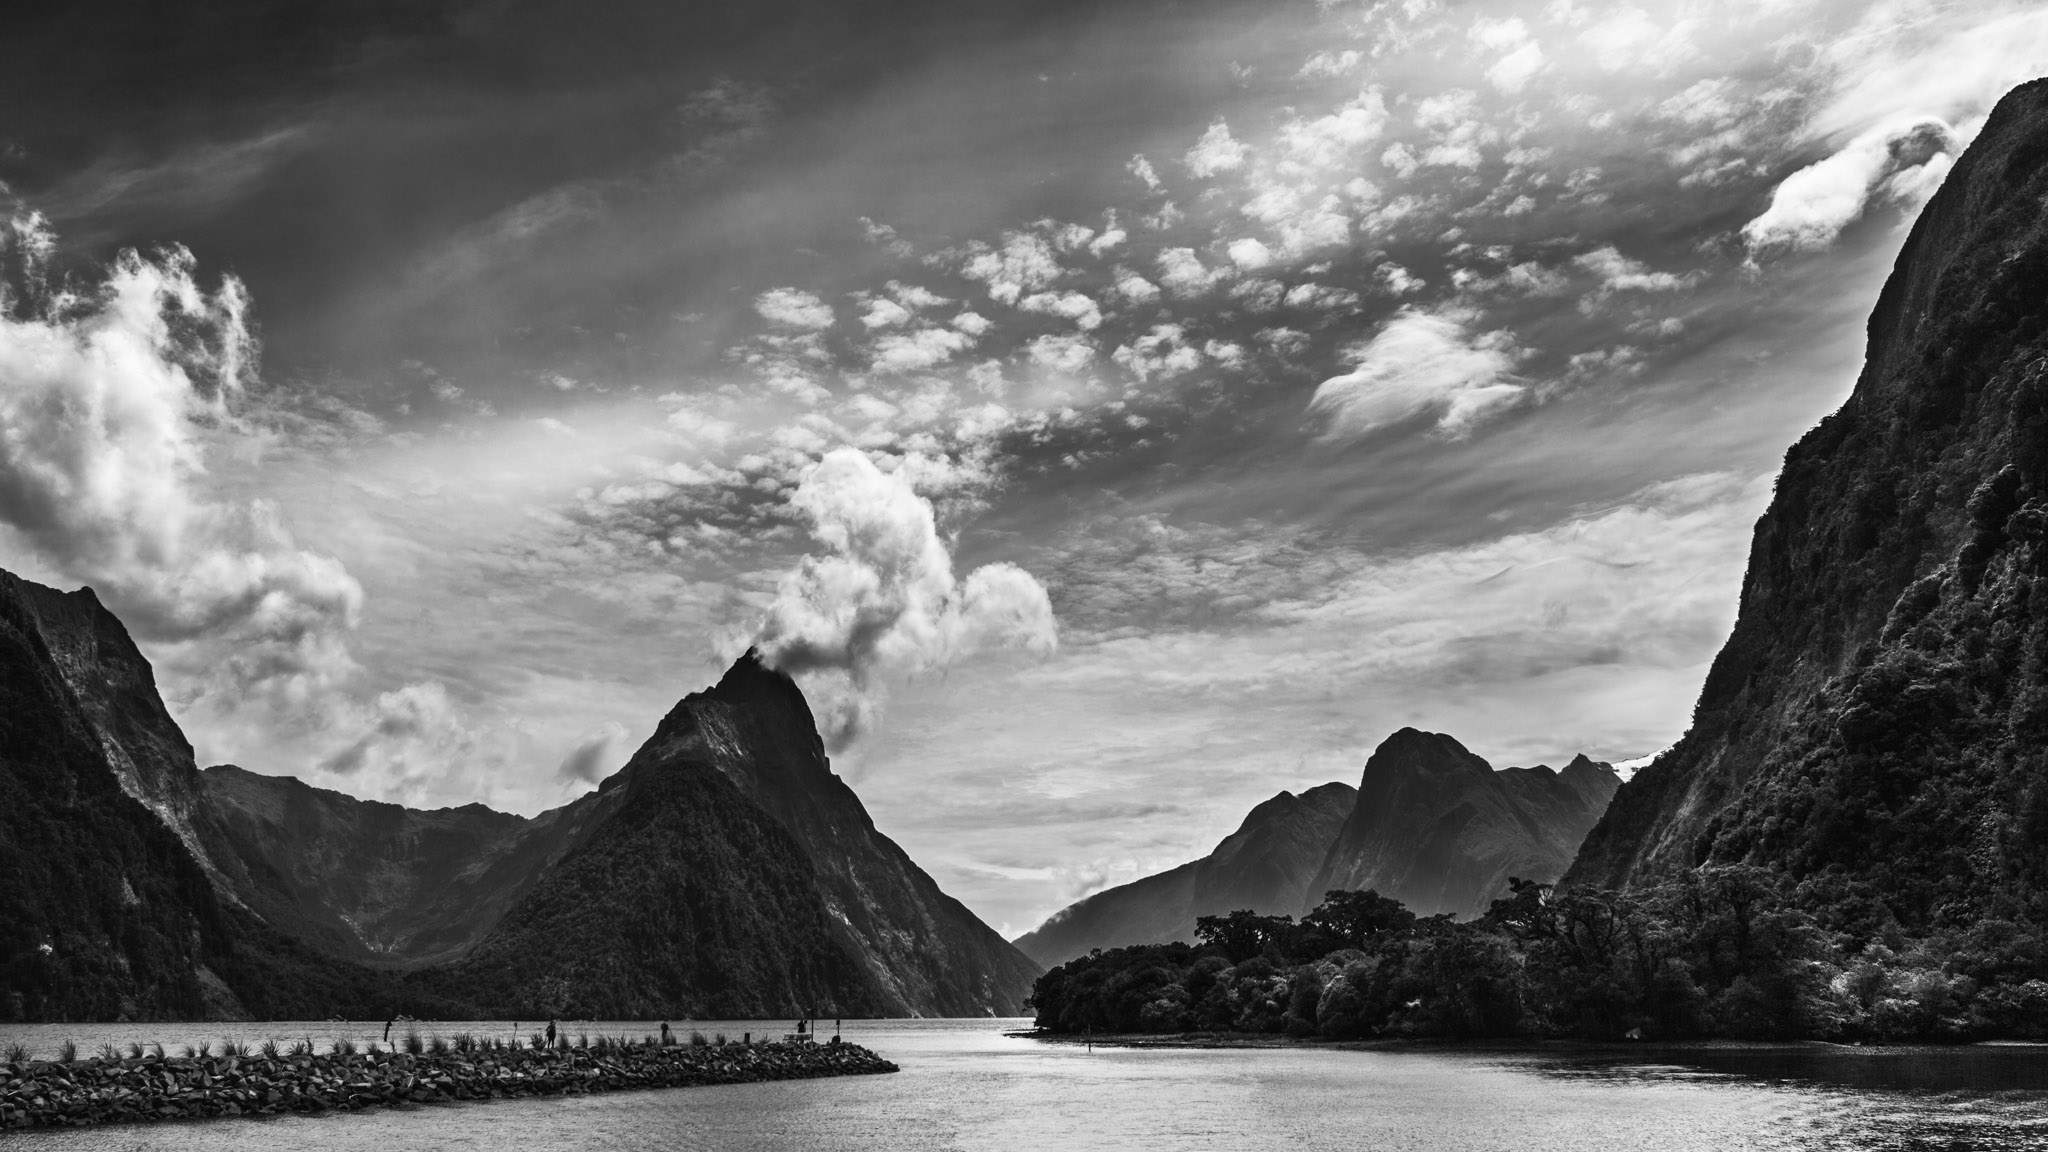 Milford Sounds-Sarah Galvan Photographe